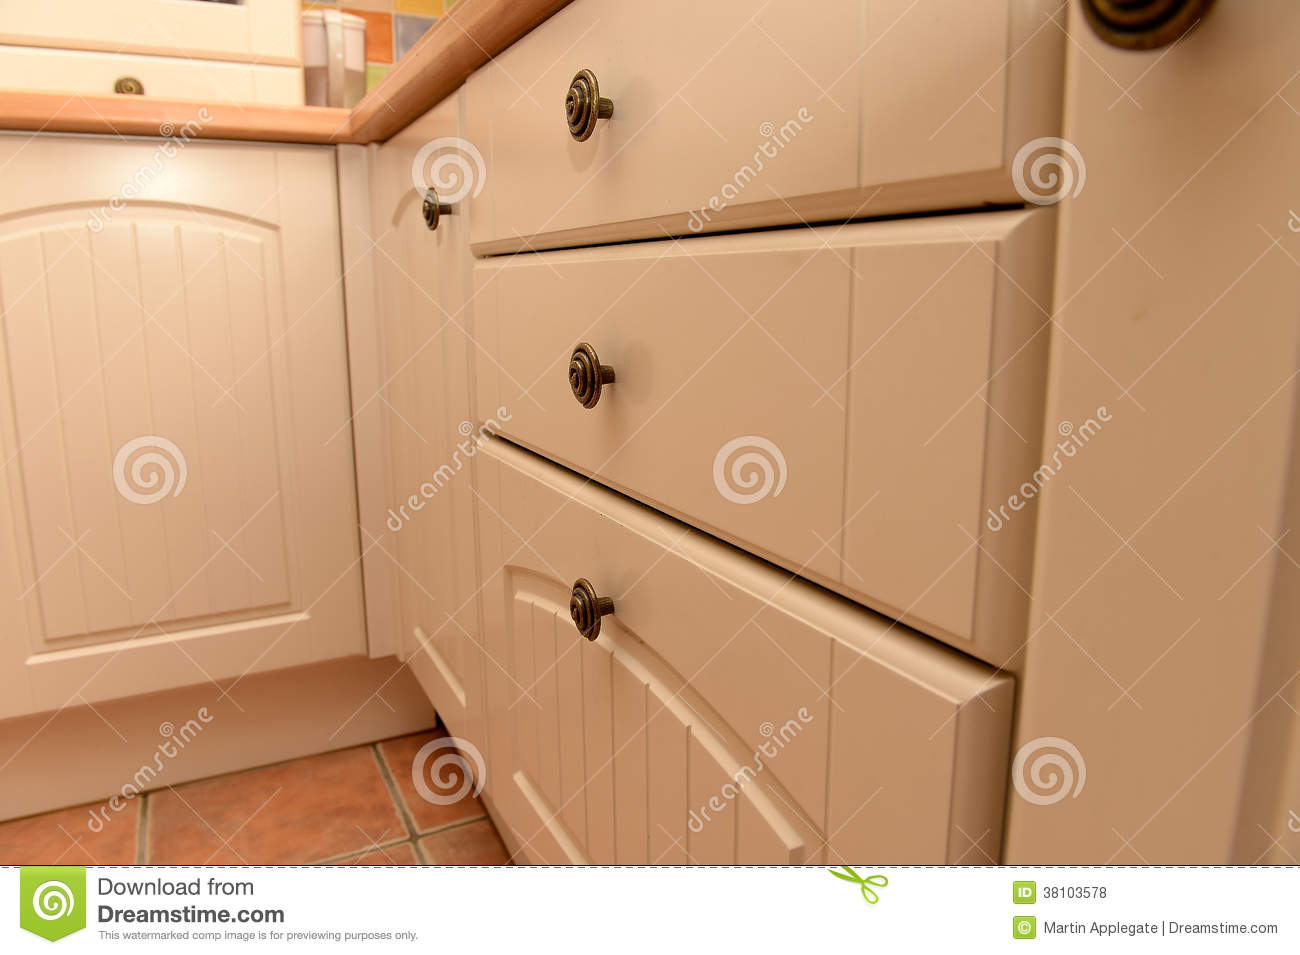 White Kitchen Cabinets And Drawers Royalty Free Stock Photos Image 38103578